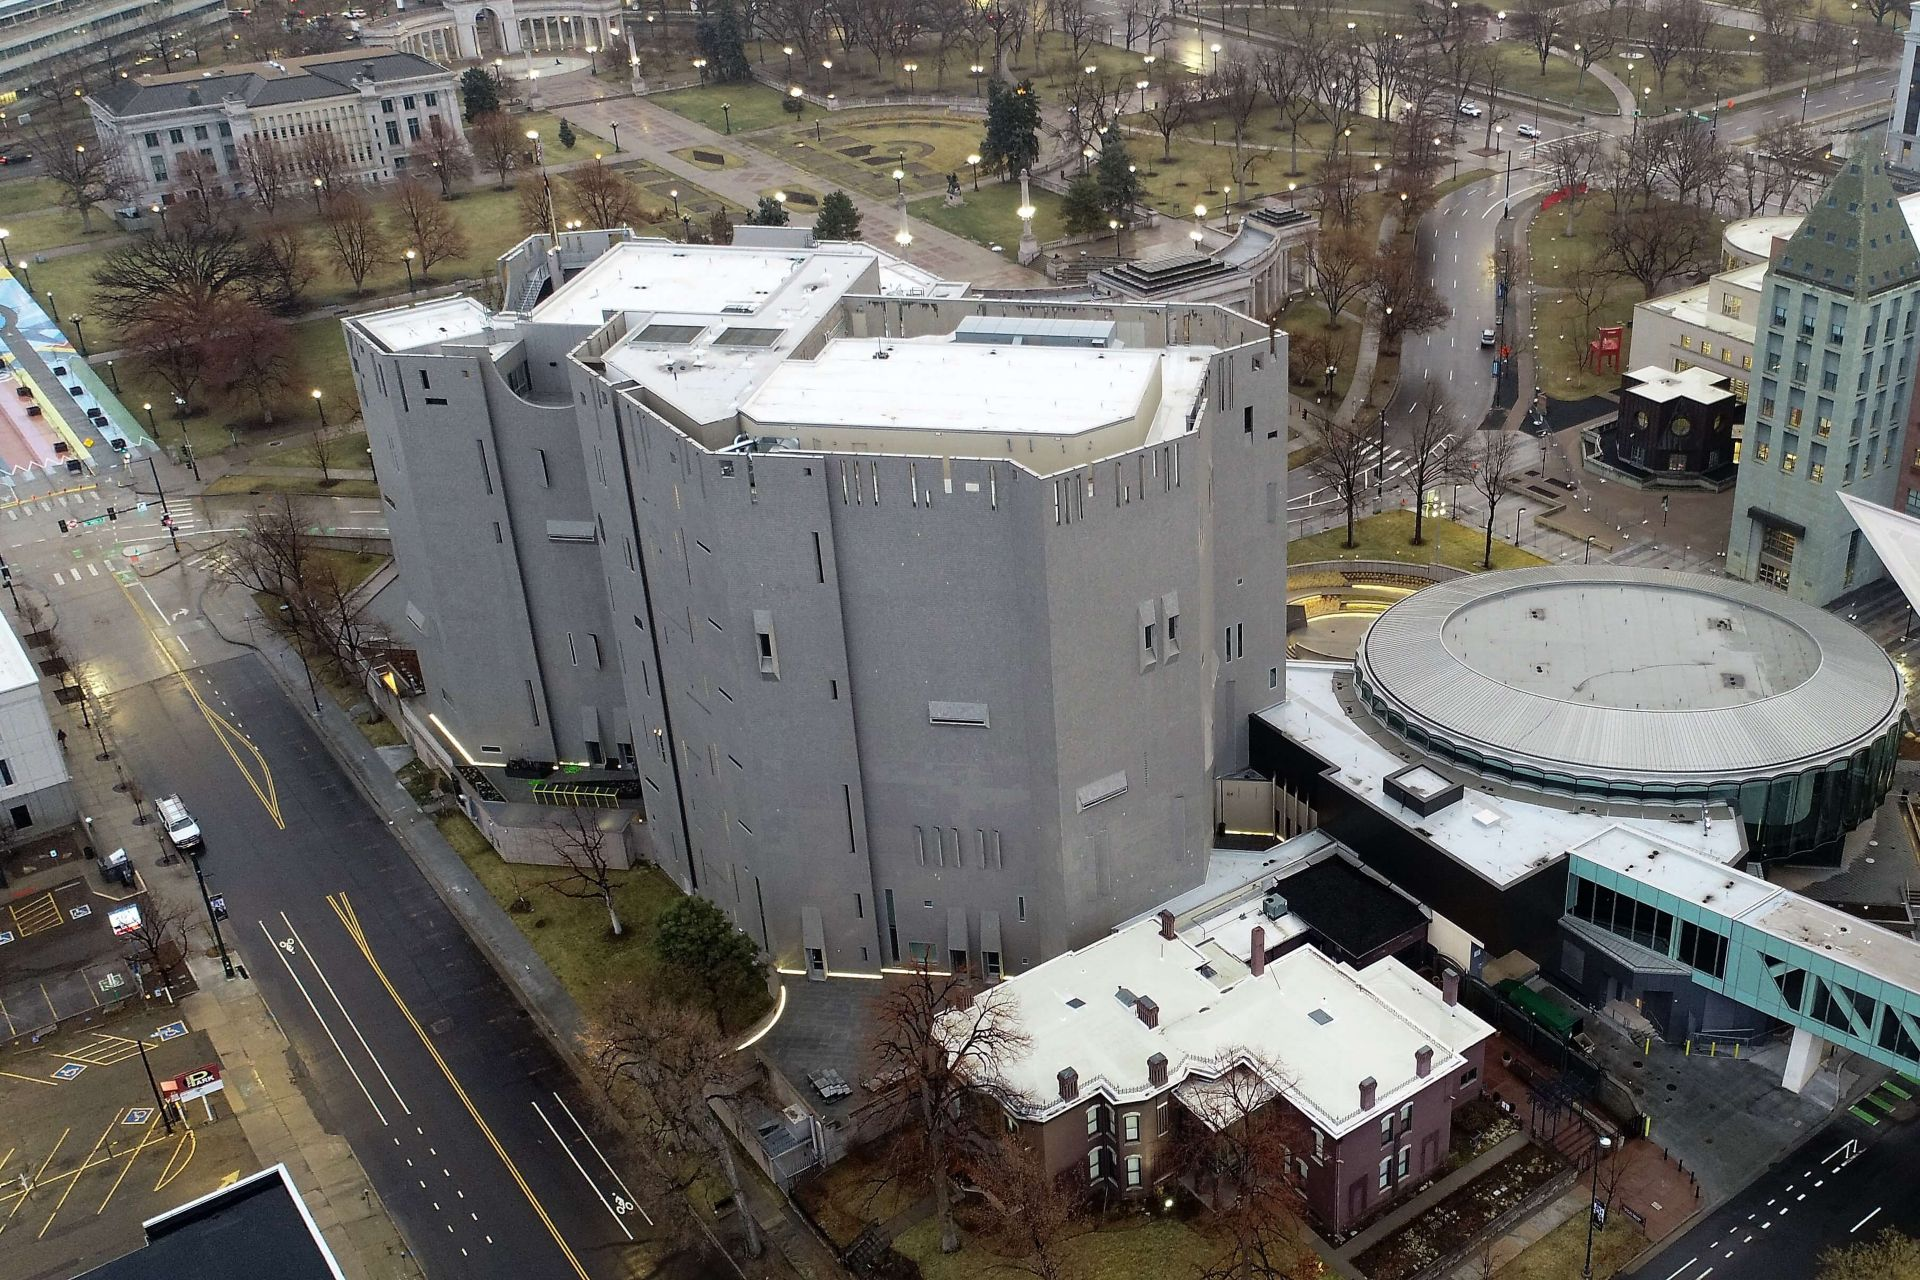 Aerial view of the Denver Art Museum showing a white Sarnafil roof overlooking the city